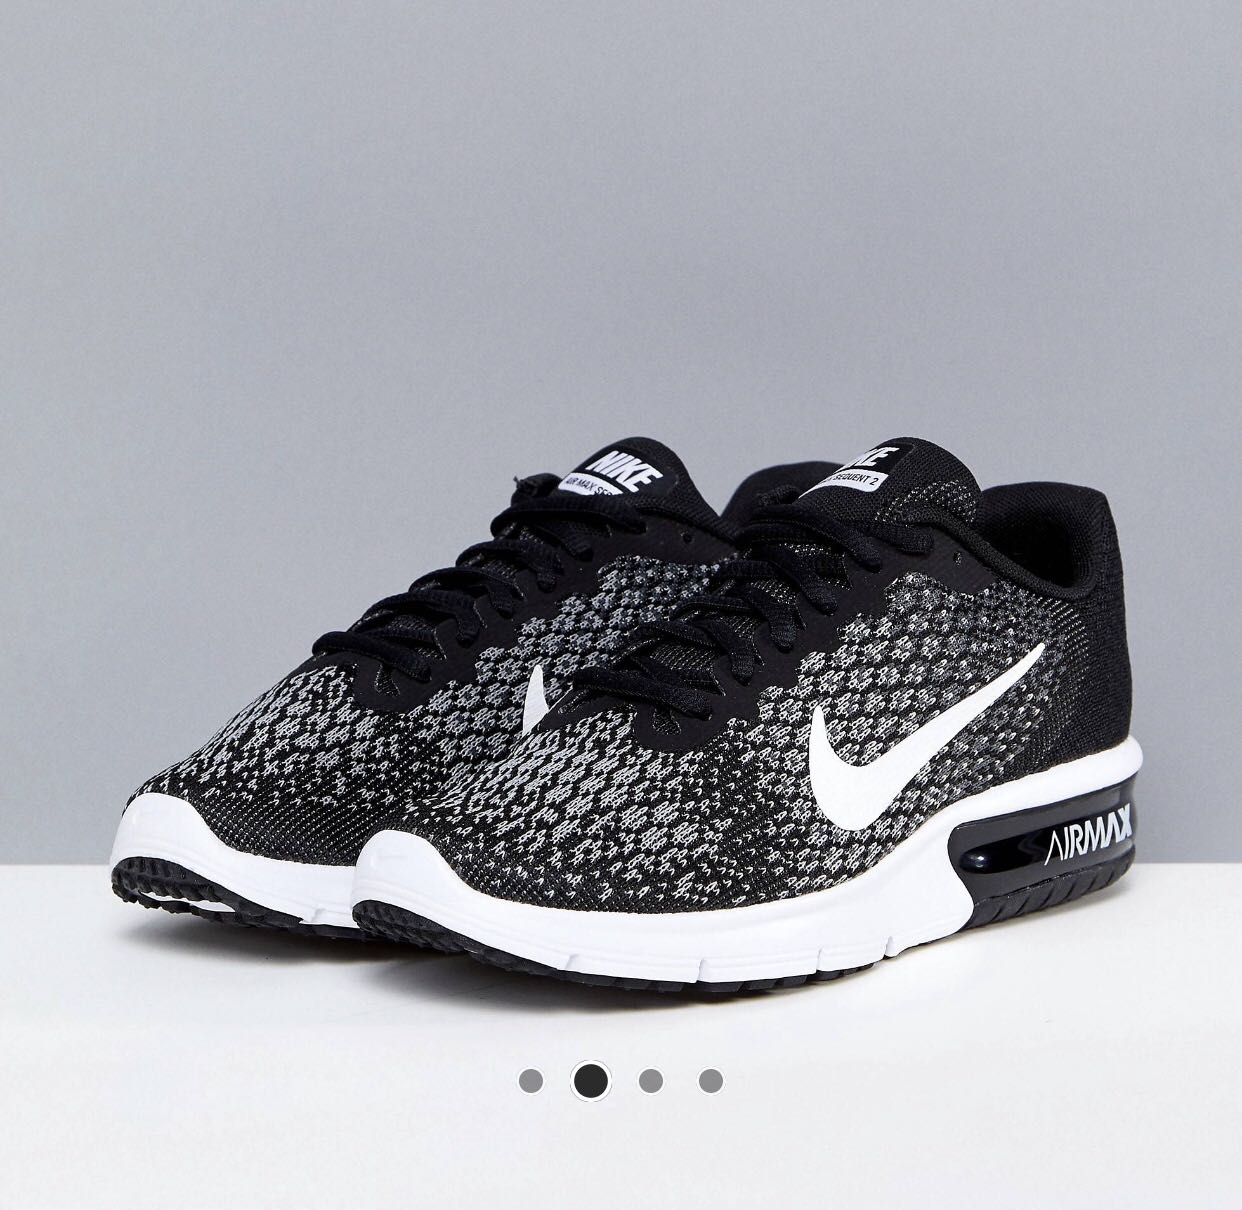 9a2275a70b Nike Air Max Sequent 2, Women's Fashion, Shoes, Sneakers on Carousell